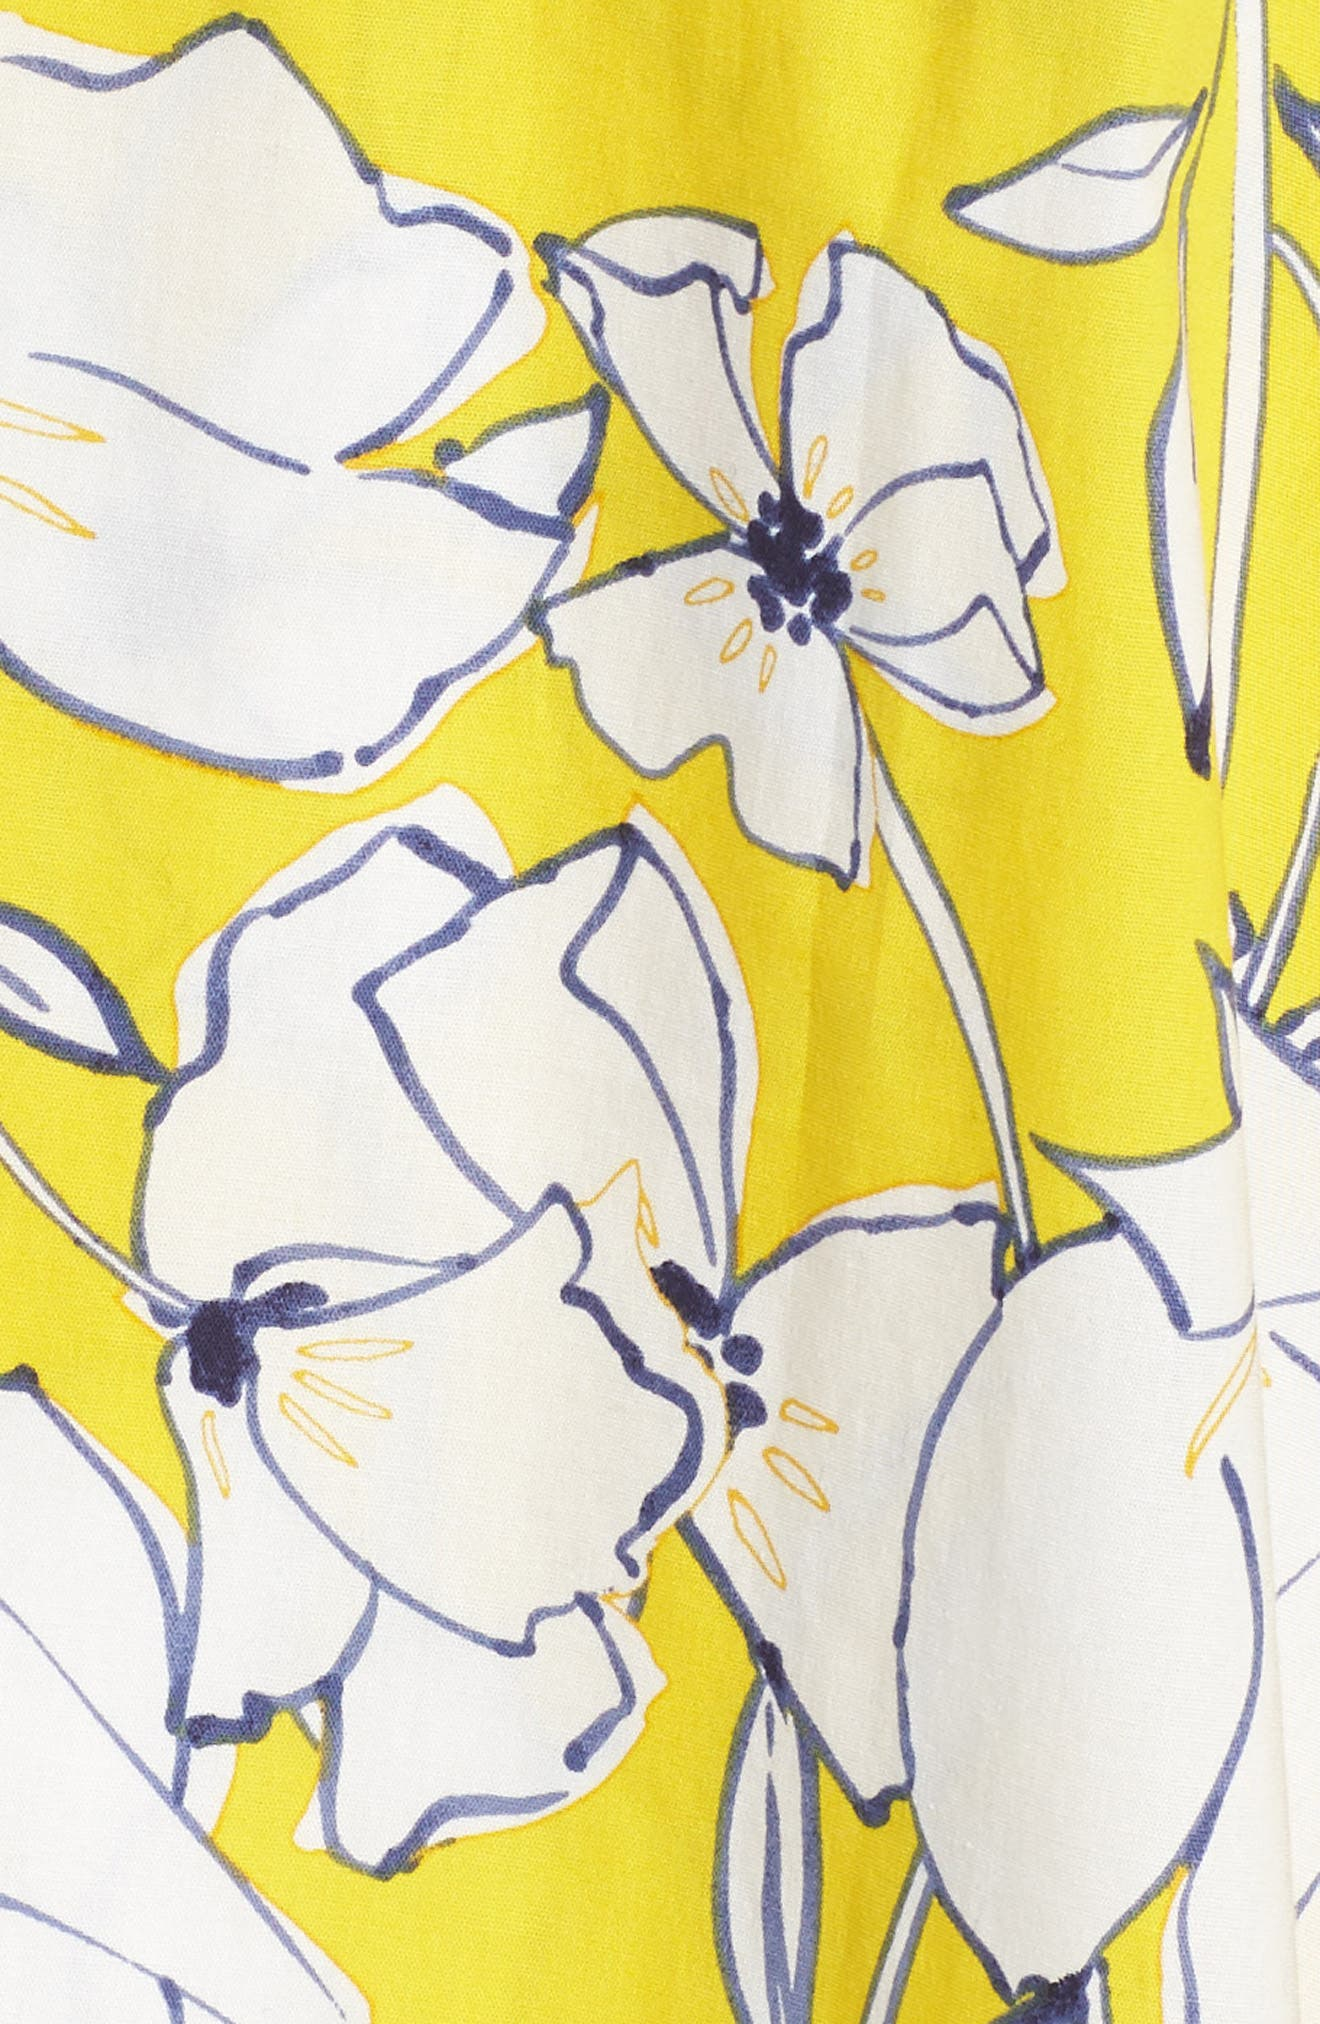 Floral Fit & Flare Dress,                             Alternate thumbnail 6, color,                             Yellow/ Navy/ White